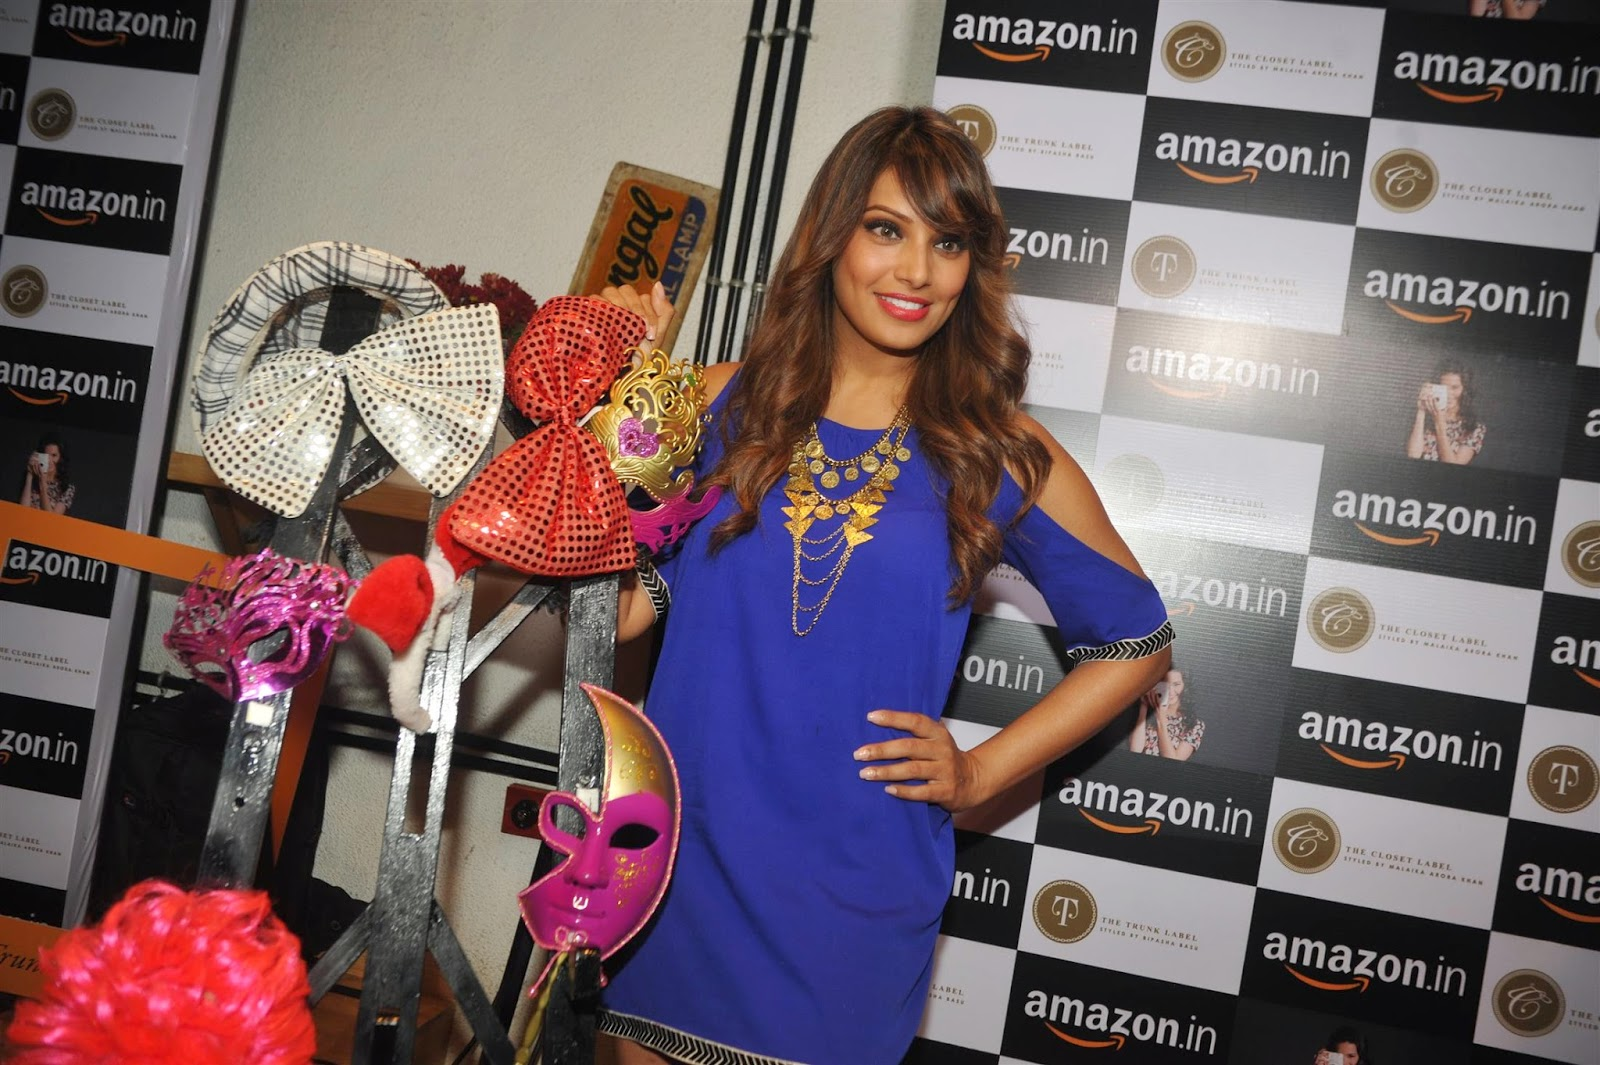 Bipasha Basu With Malaika Arora Khan at Amazon.in Event Photos